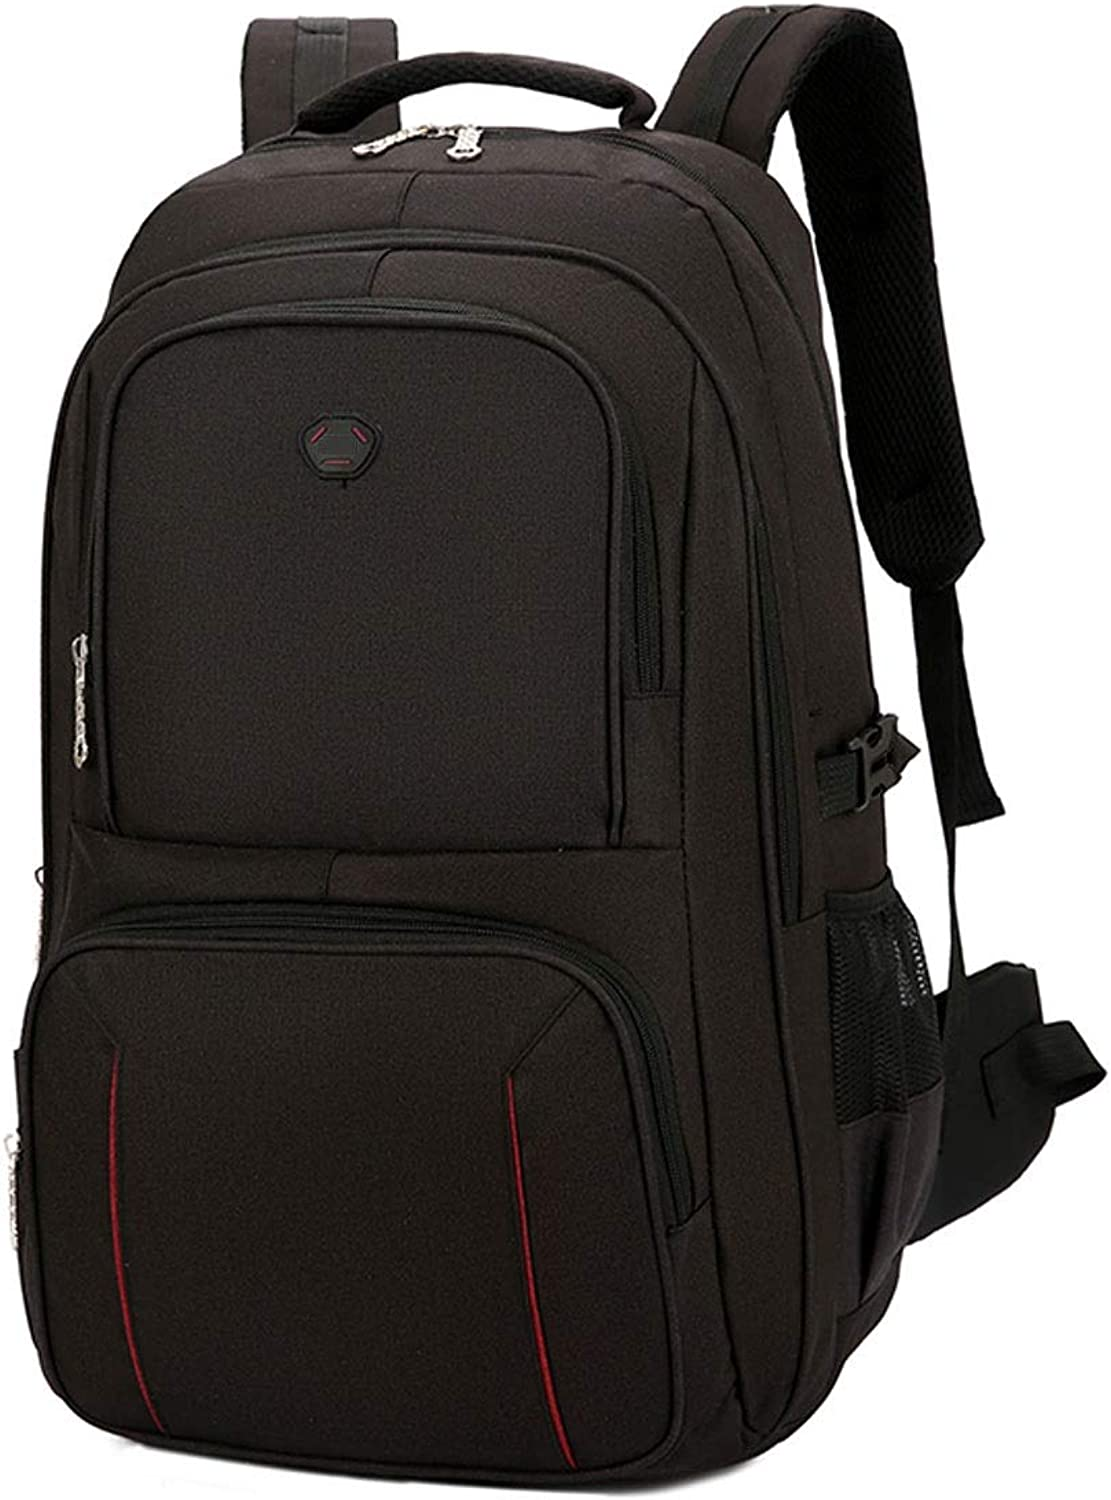 Laptop Backpack, Large Business Men and Women Travel Backpack Suitable for 15.6-17.3 inch Laptop, Waterproof Casual Outdoor Student Bag